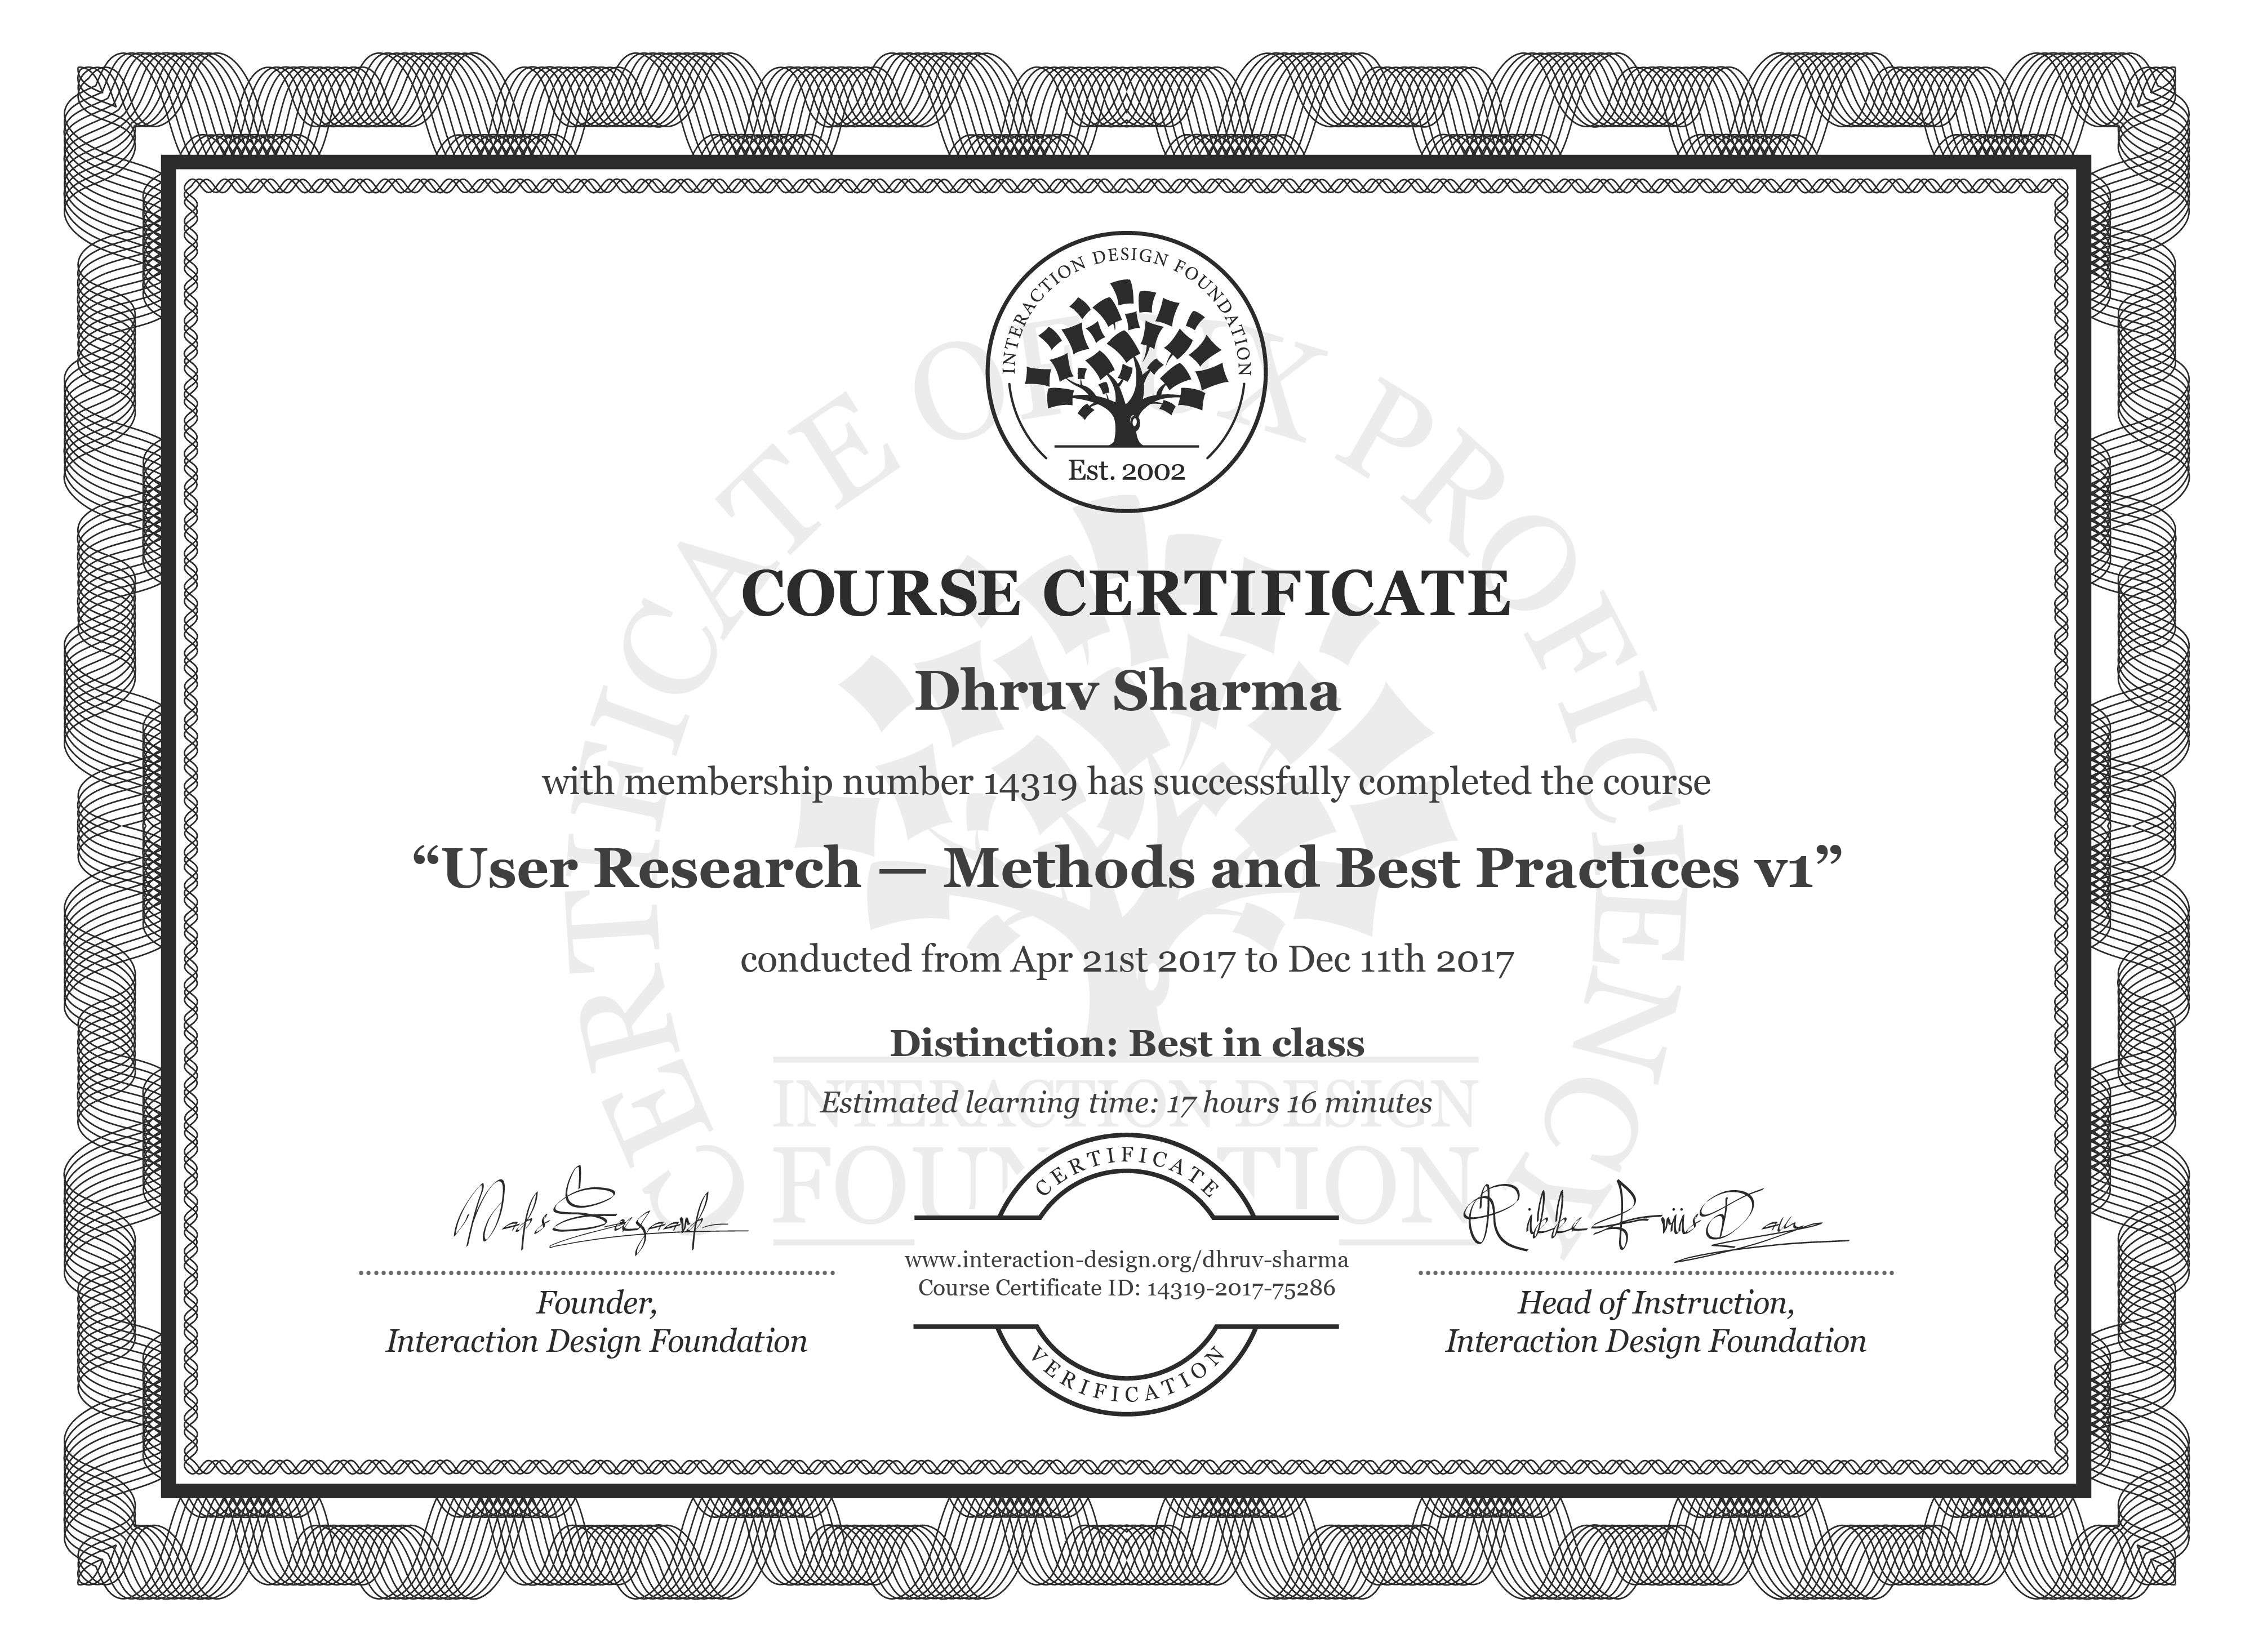 Dhruv Sharma: Course Certificate - User Research — Methods and Best Practices